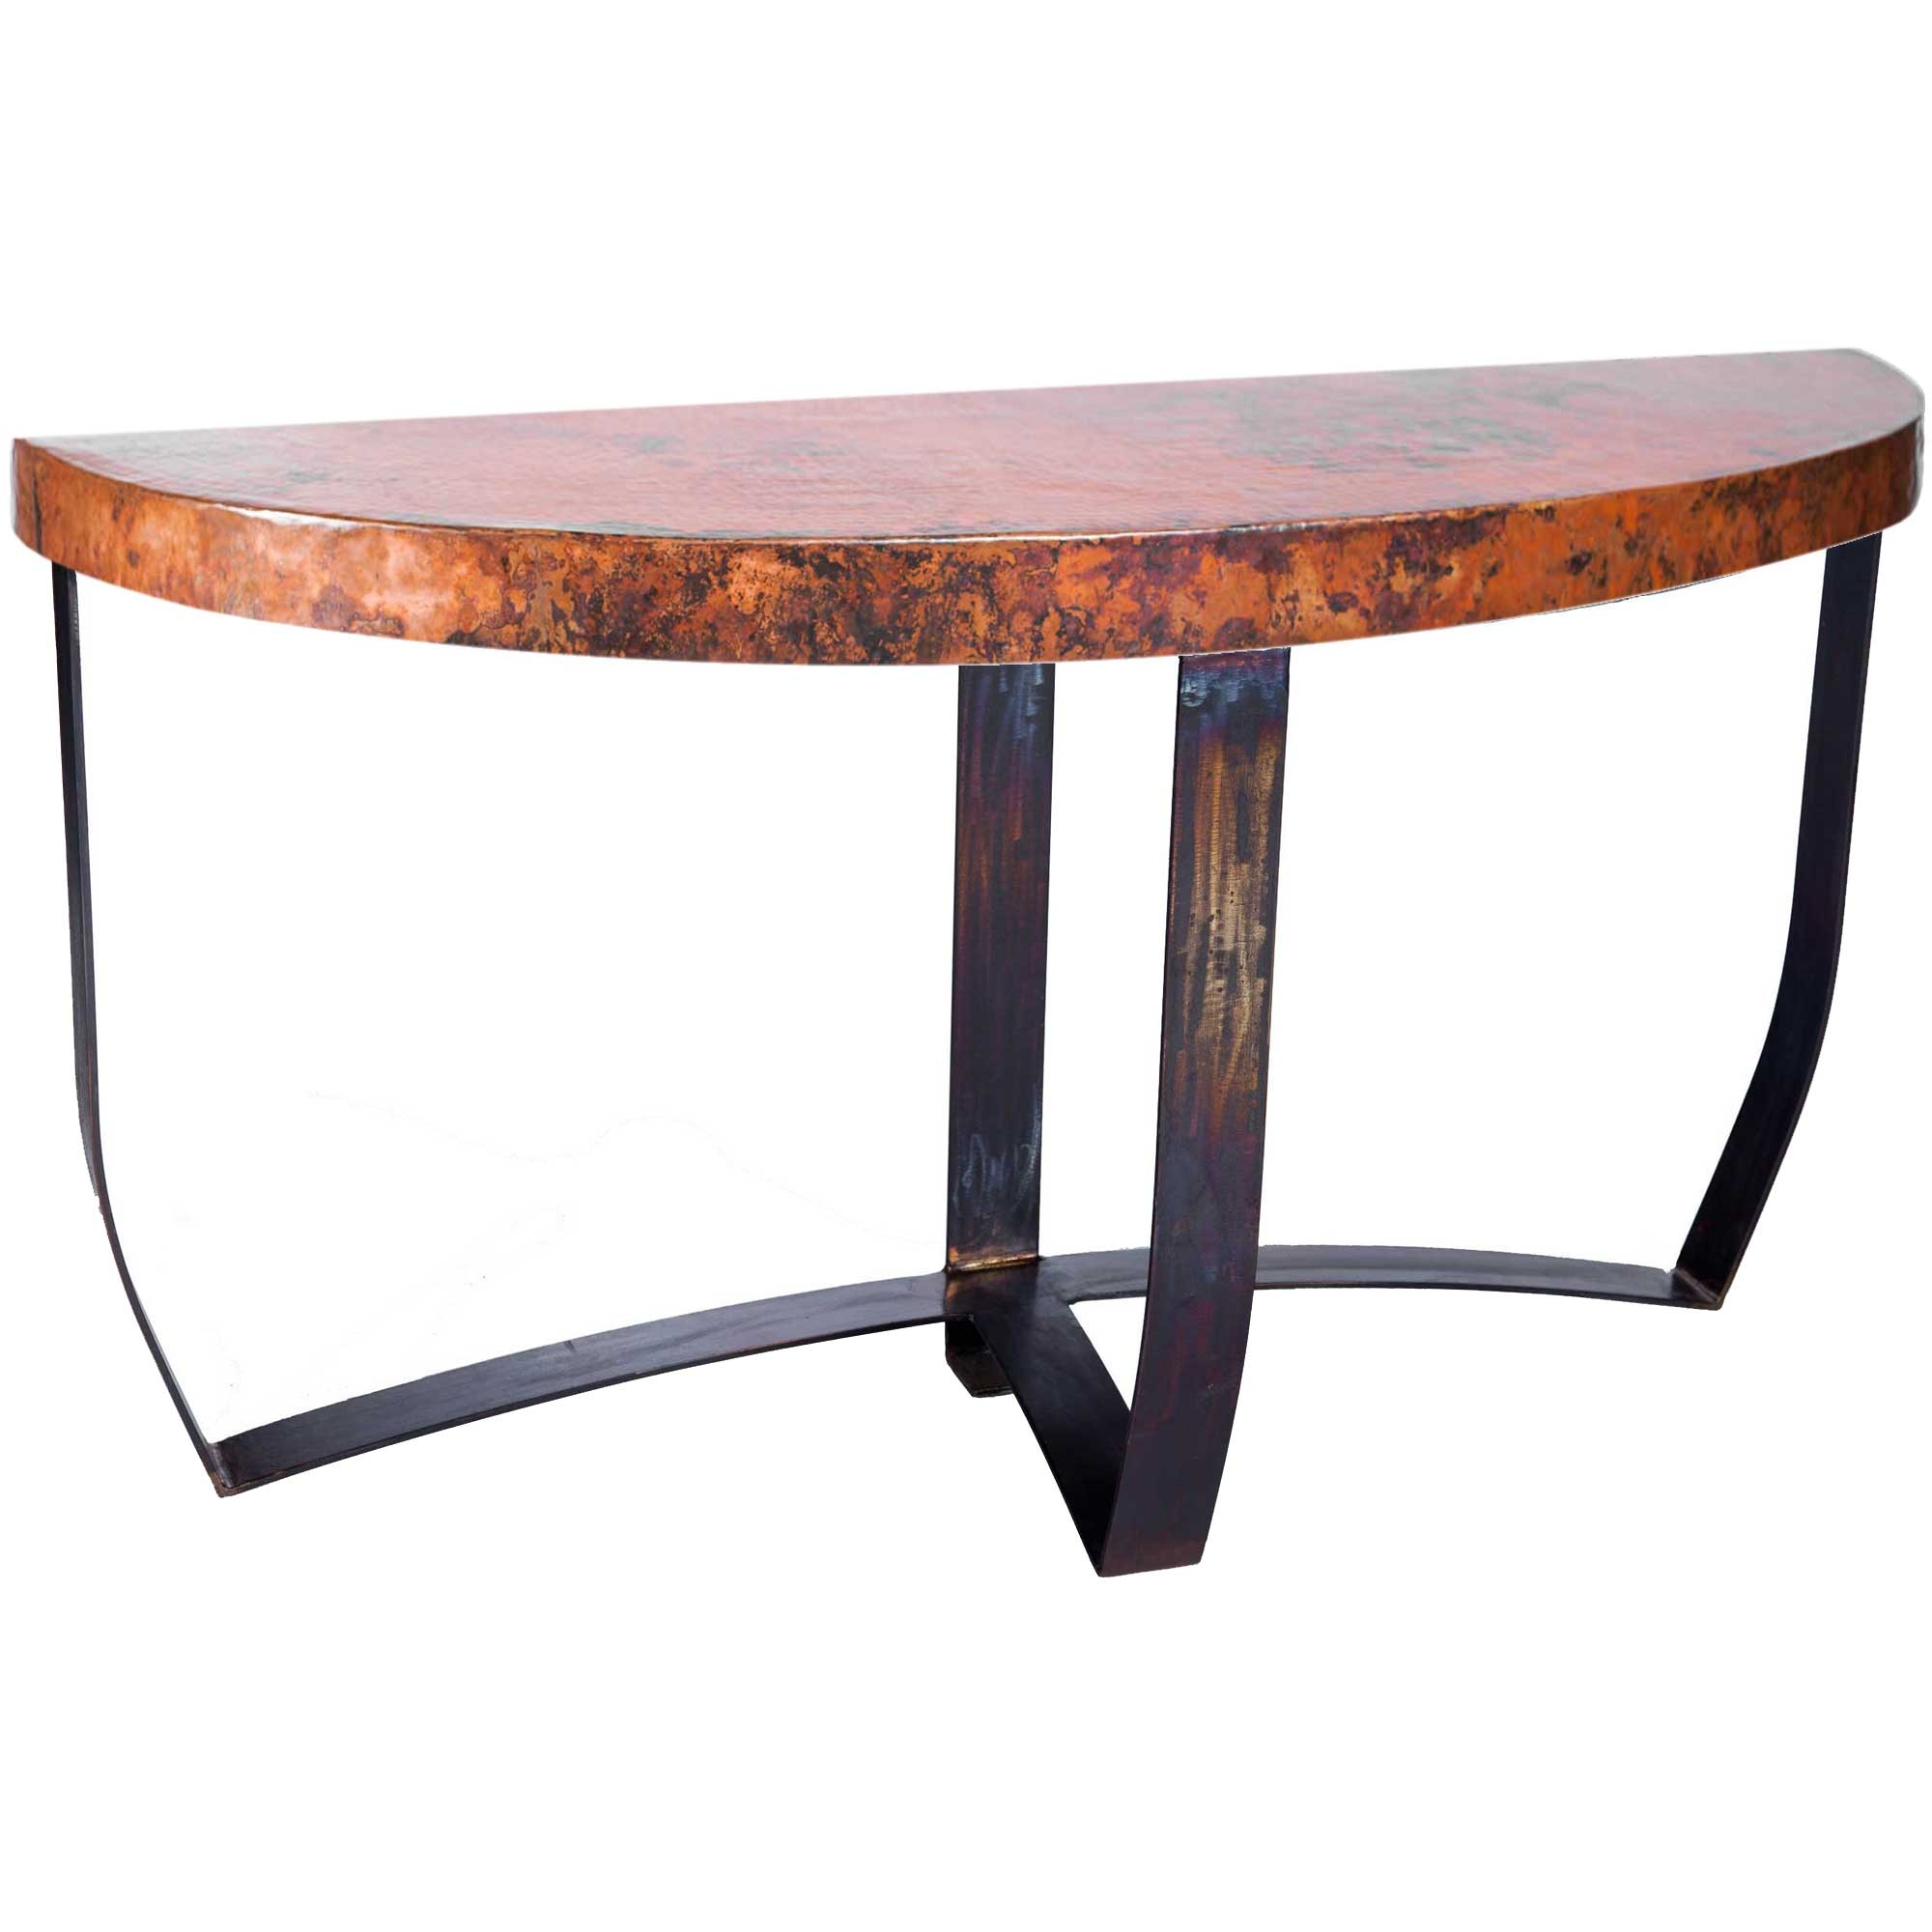 Attractive Pictured Here Is The Demi Lune Strap Console Table With Wrought Iron Base  And Hammered Copper